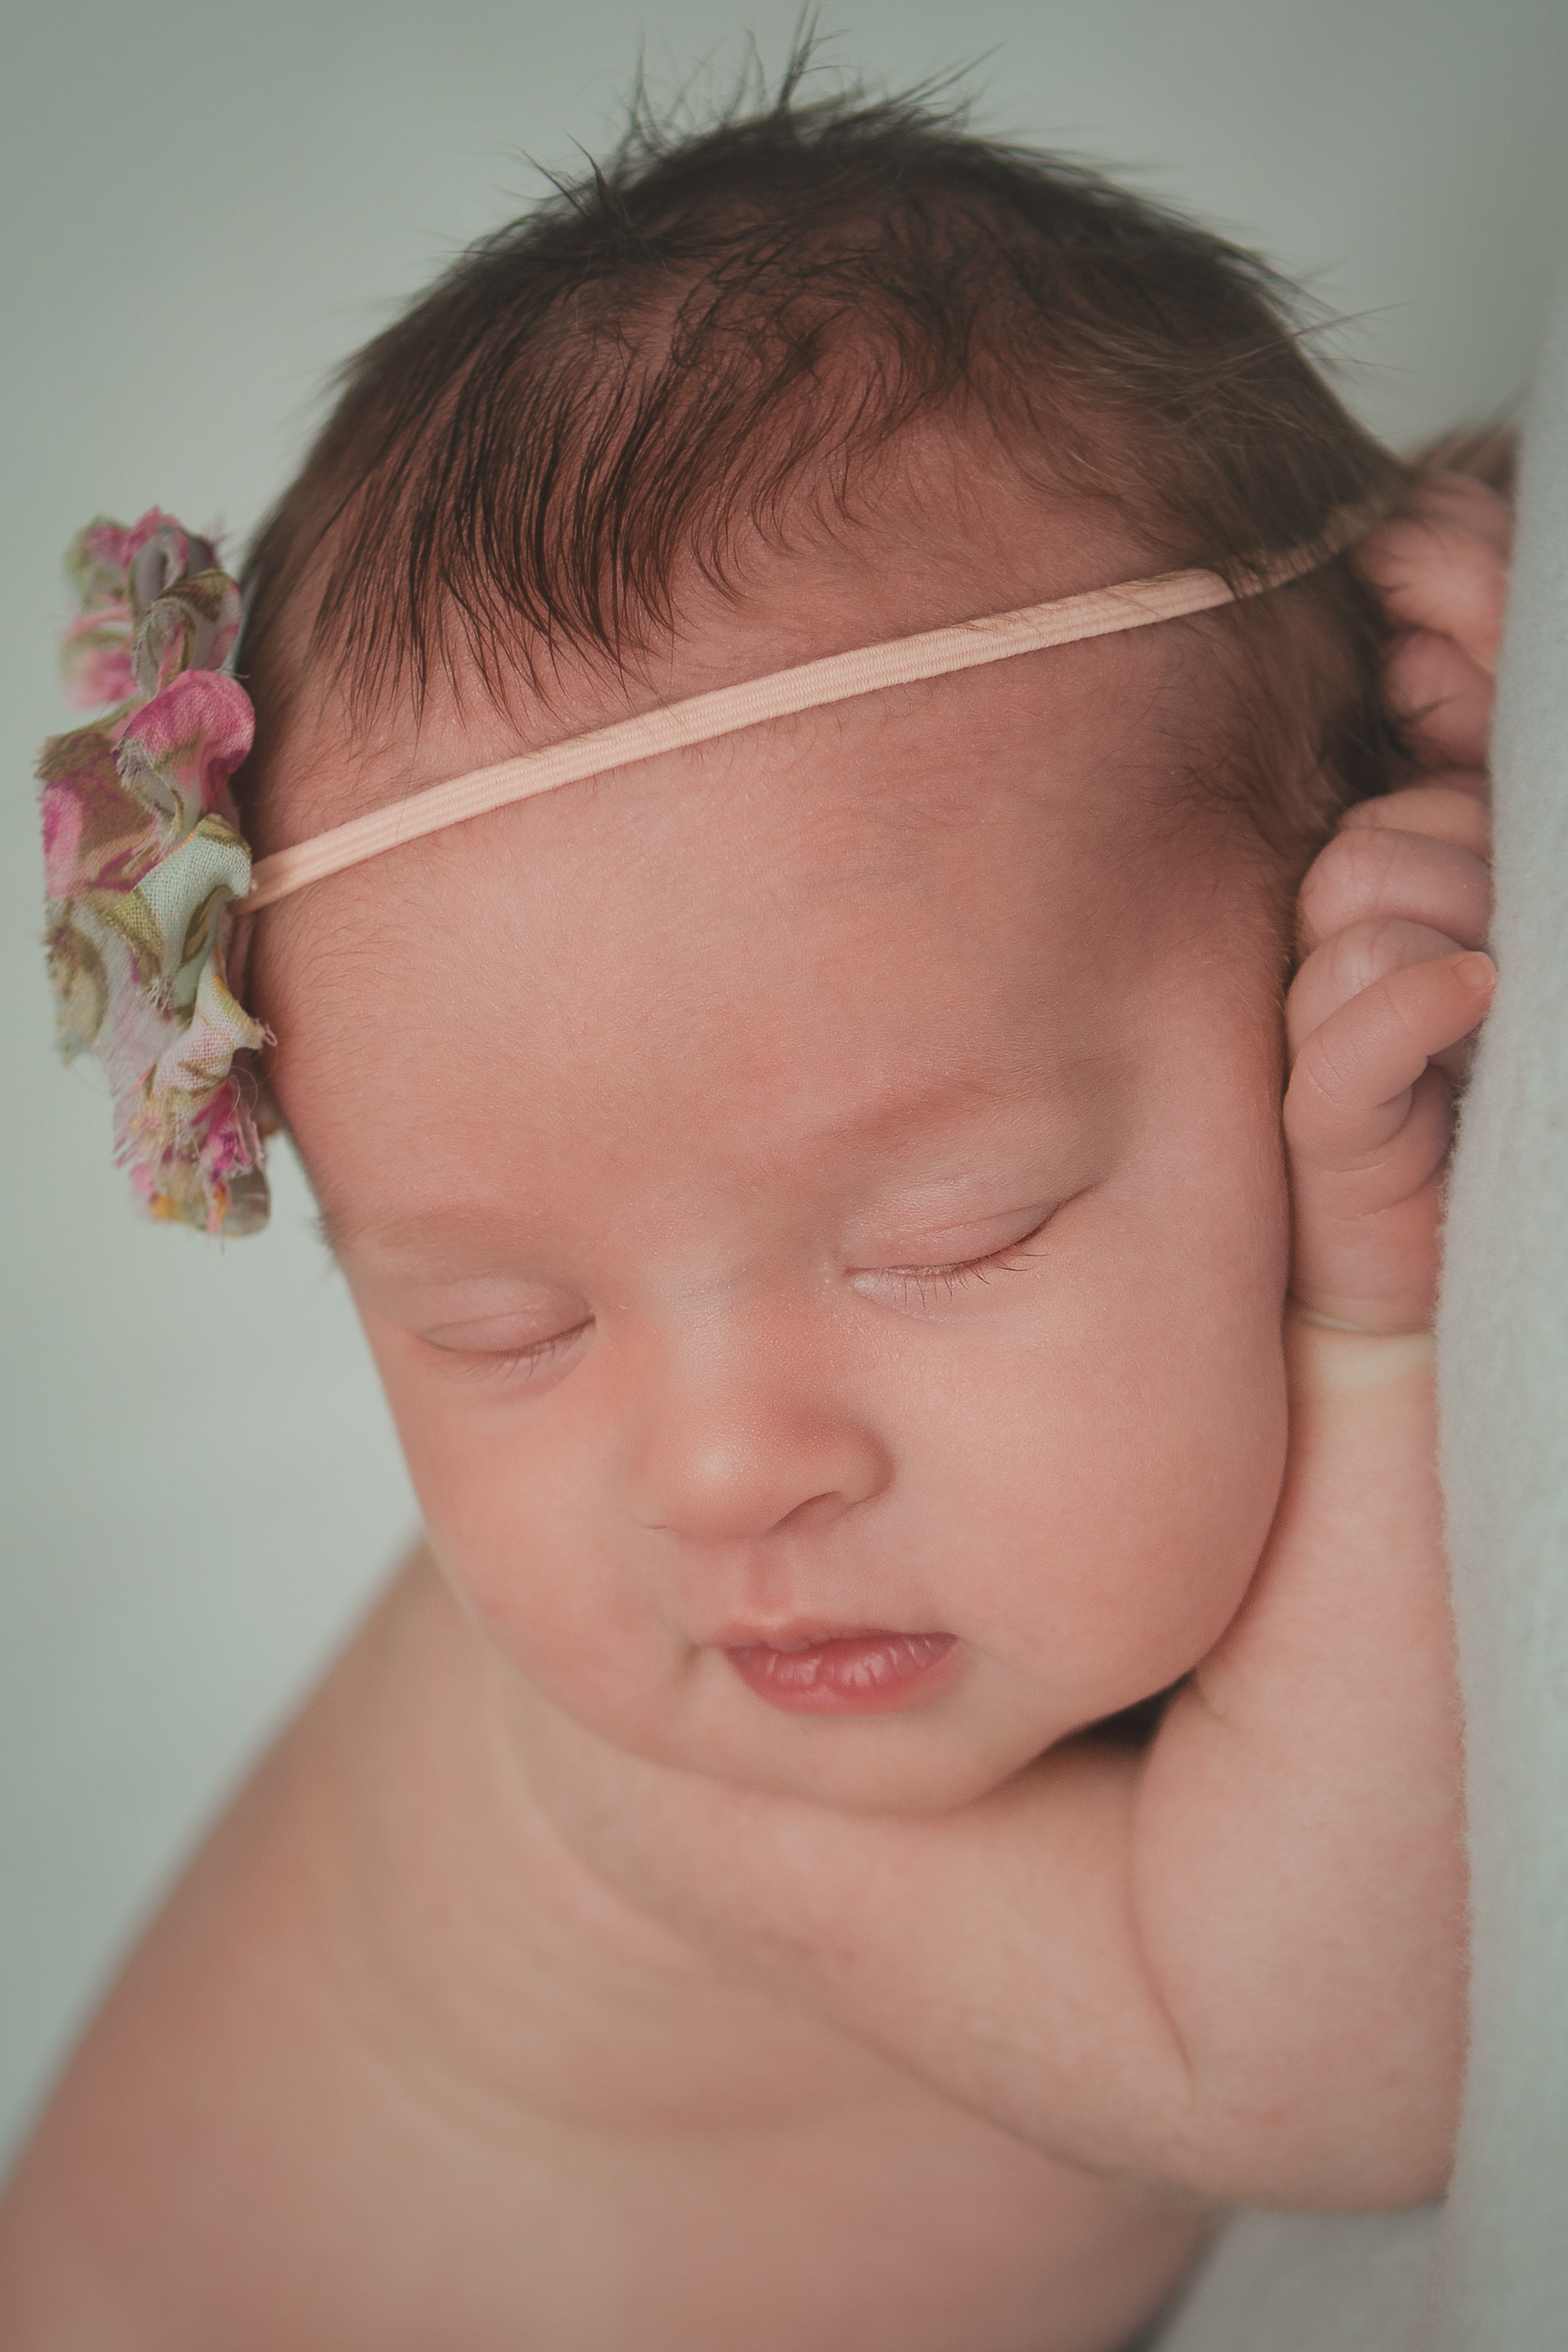 Newborn baby girl sleeping pose, rose pink flower headband, green blue blanket fabric backdrop, head chin on hands bean bag pose.